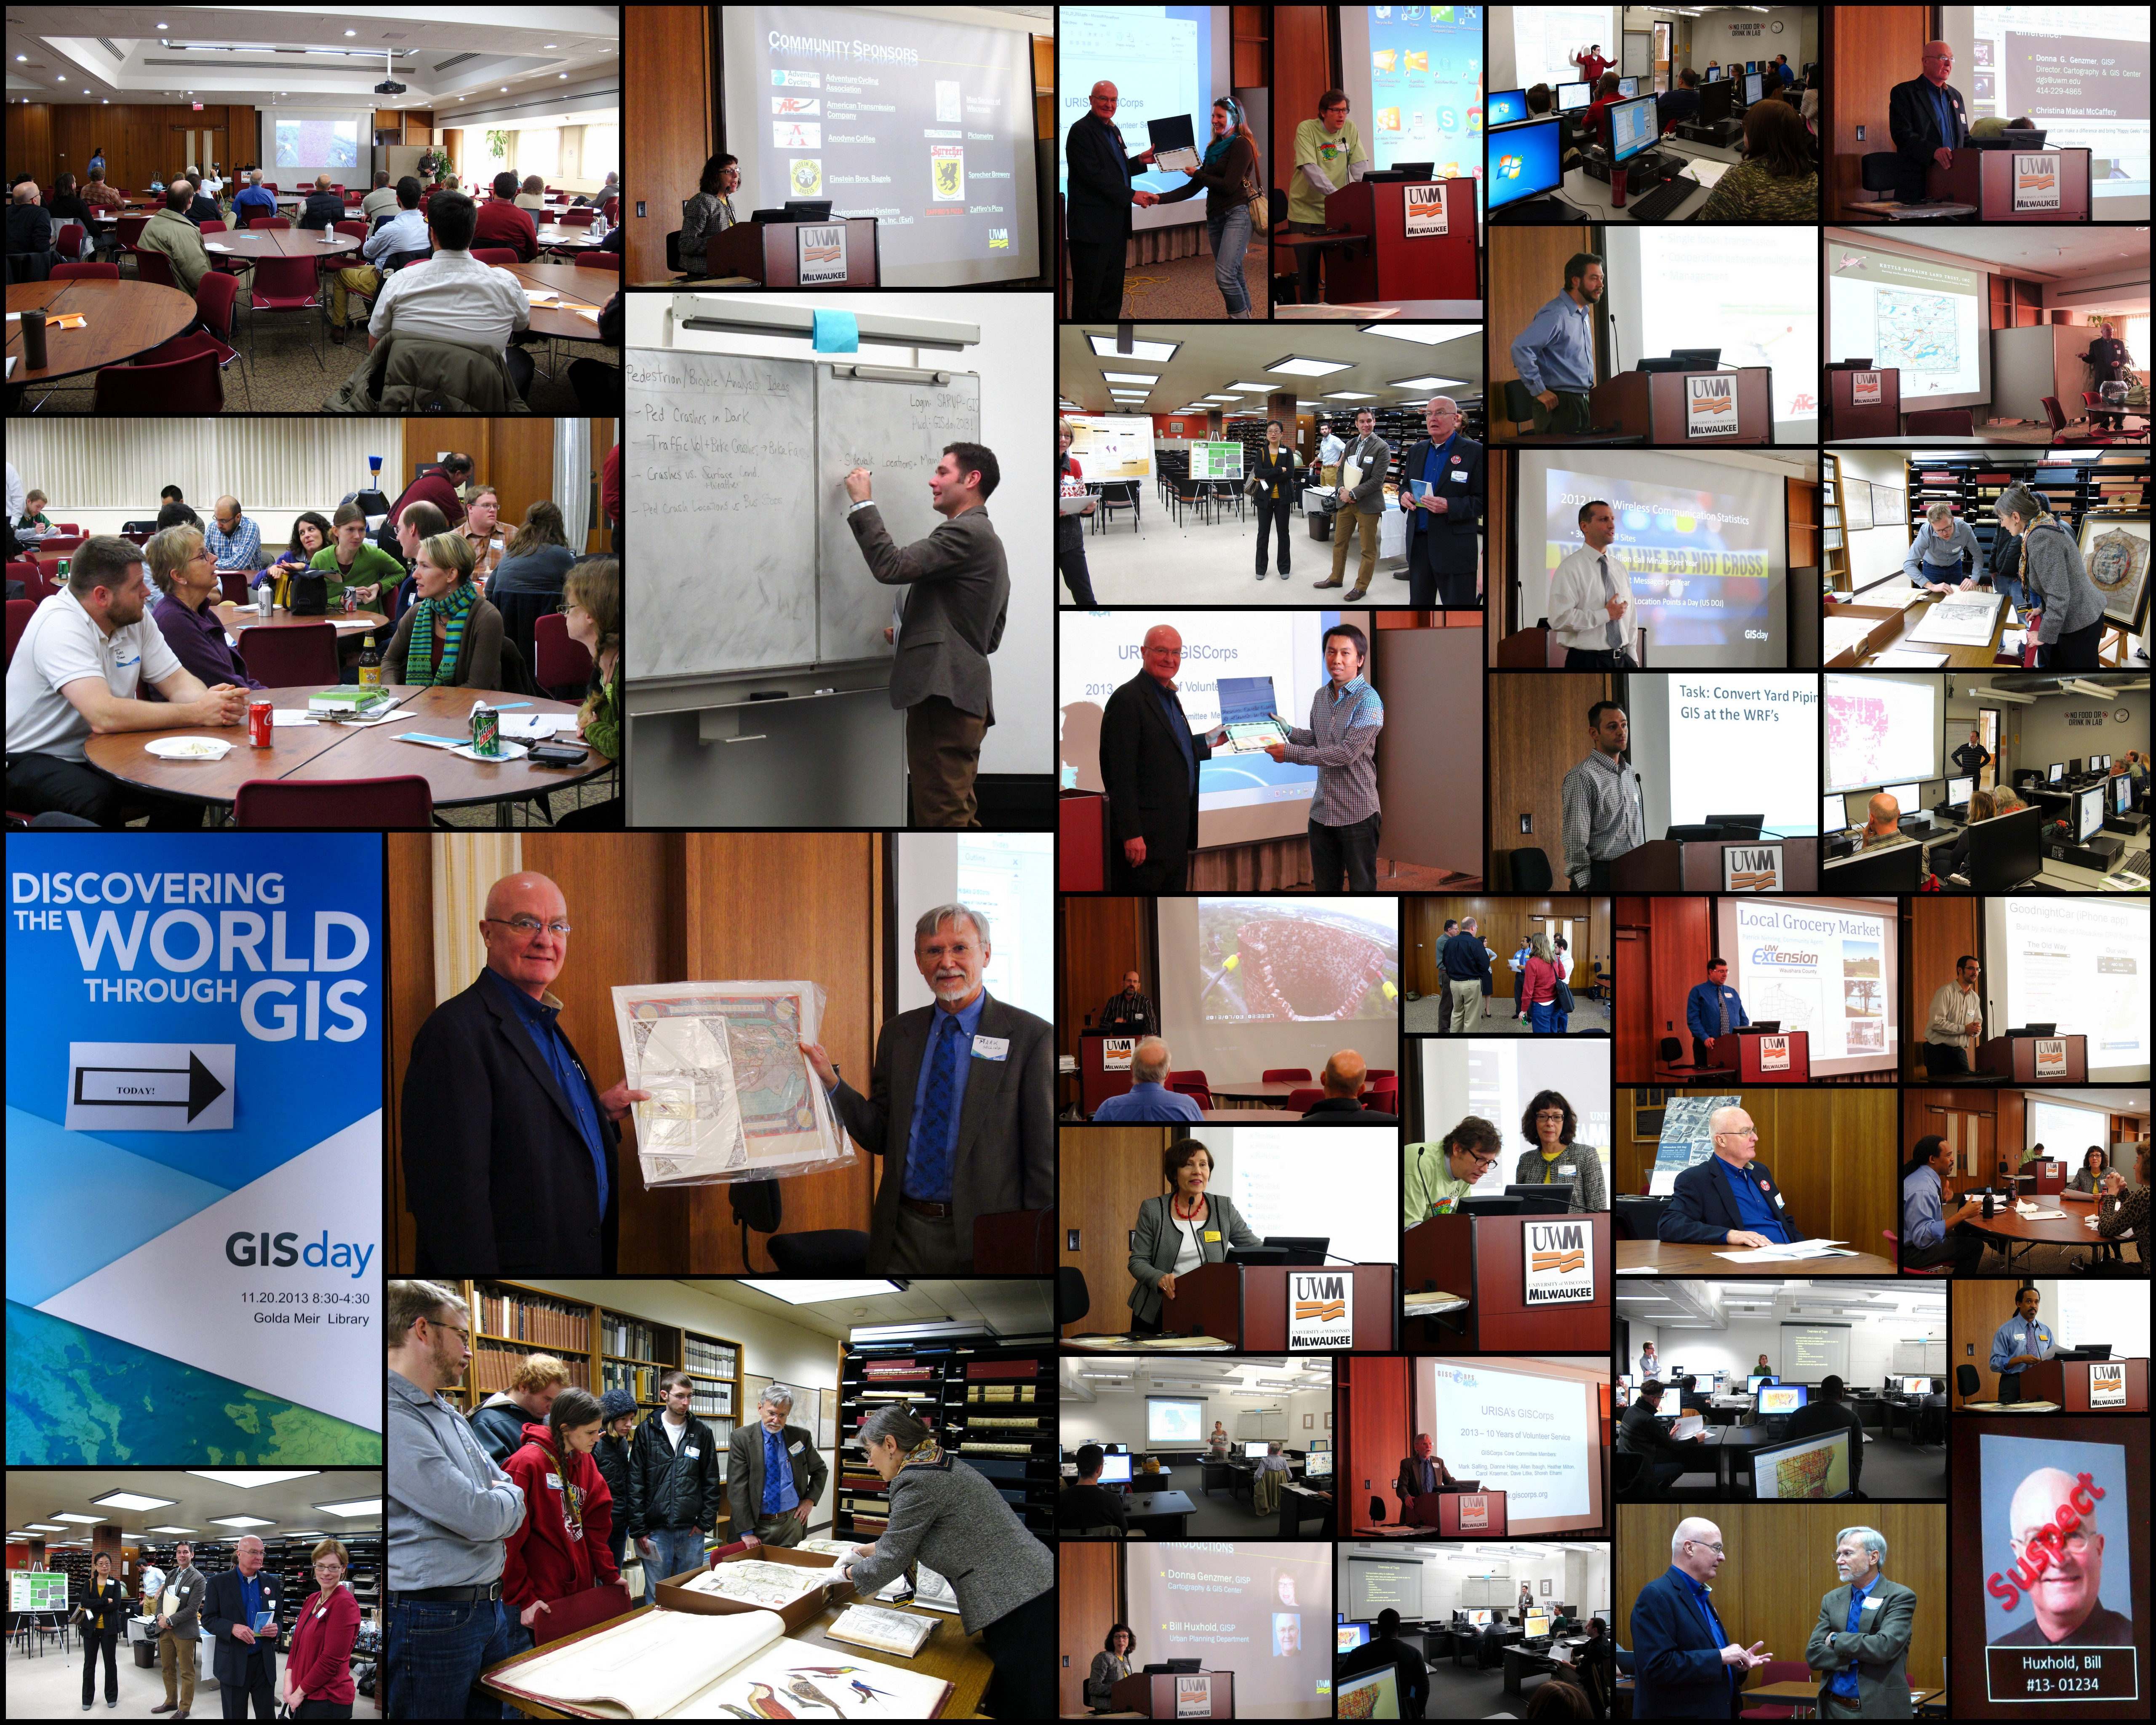 Univ of Wisconson - Milwaukee GIS Day 2013